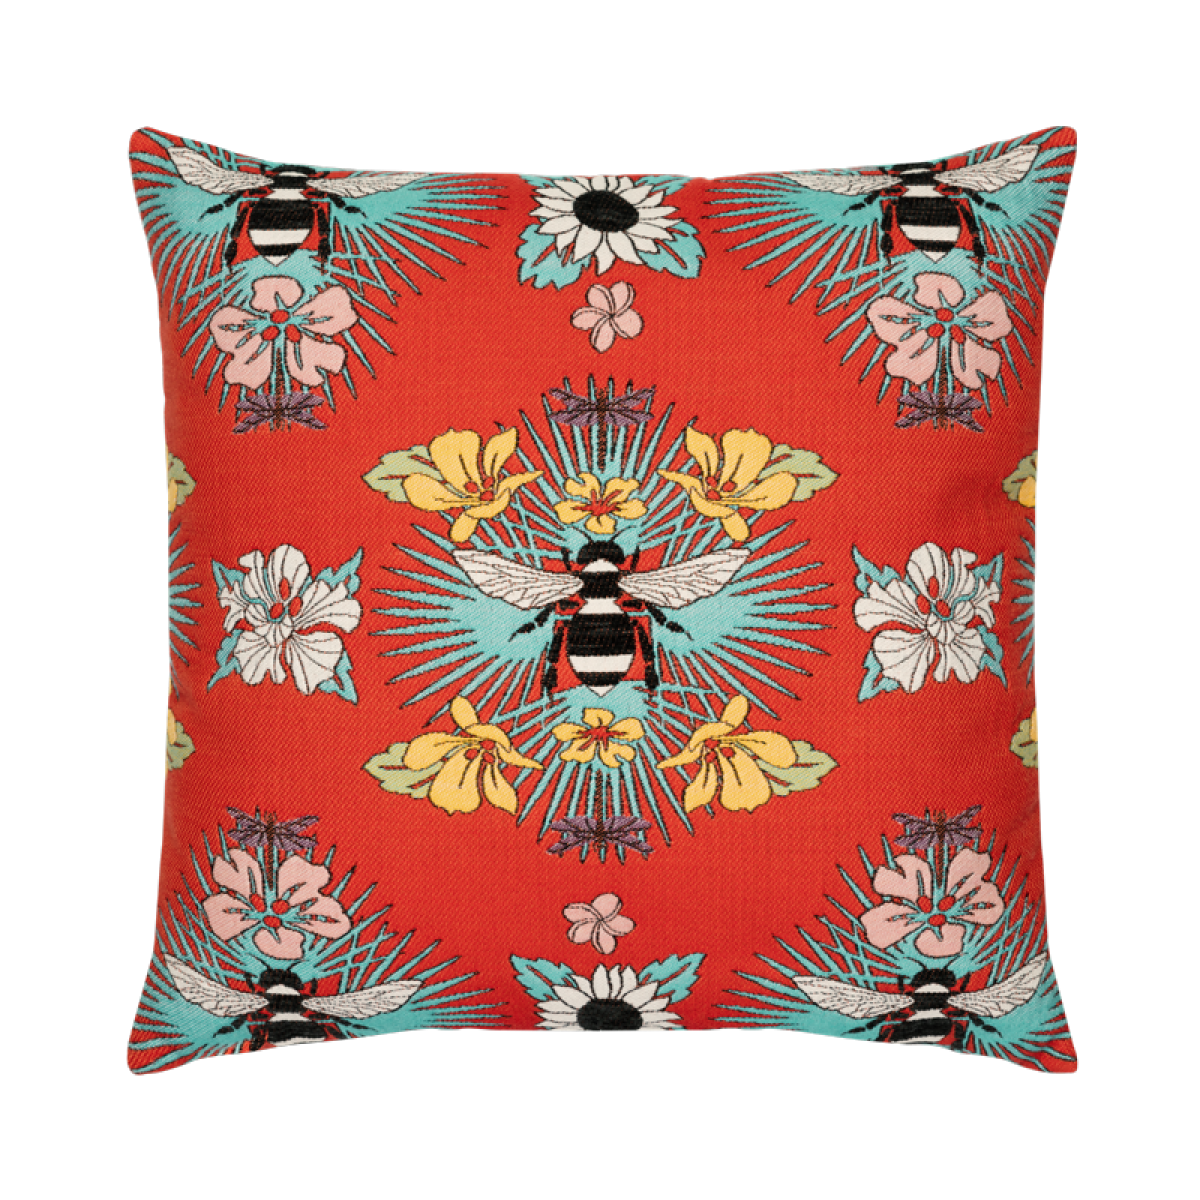 Tropical Bee Red - This item will ship 2/19